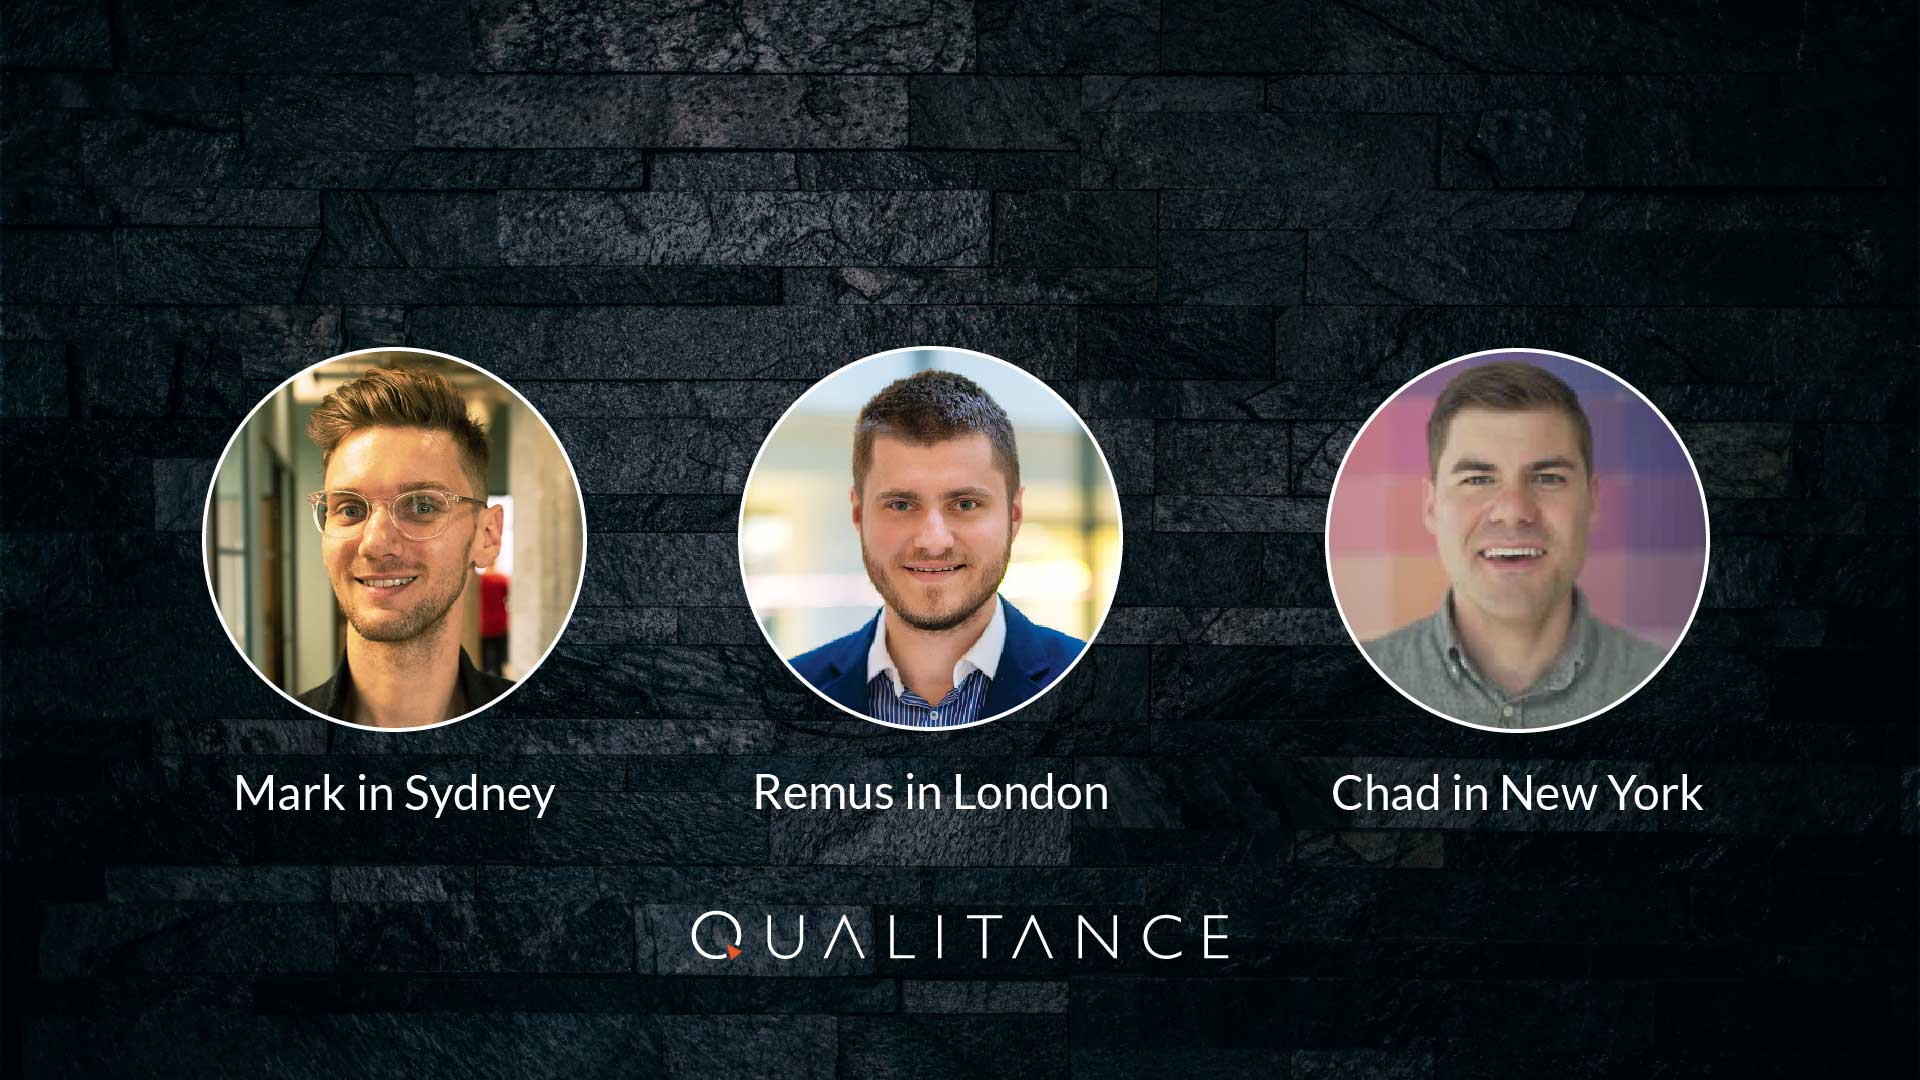 The new talent joining QUALITANCE